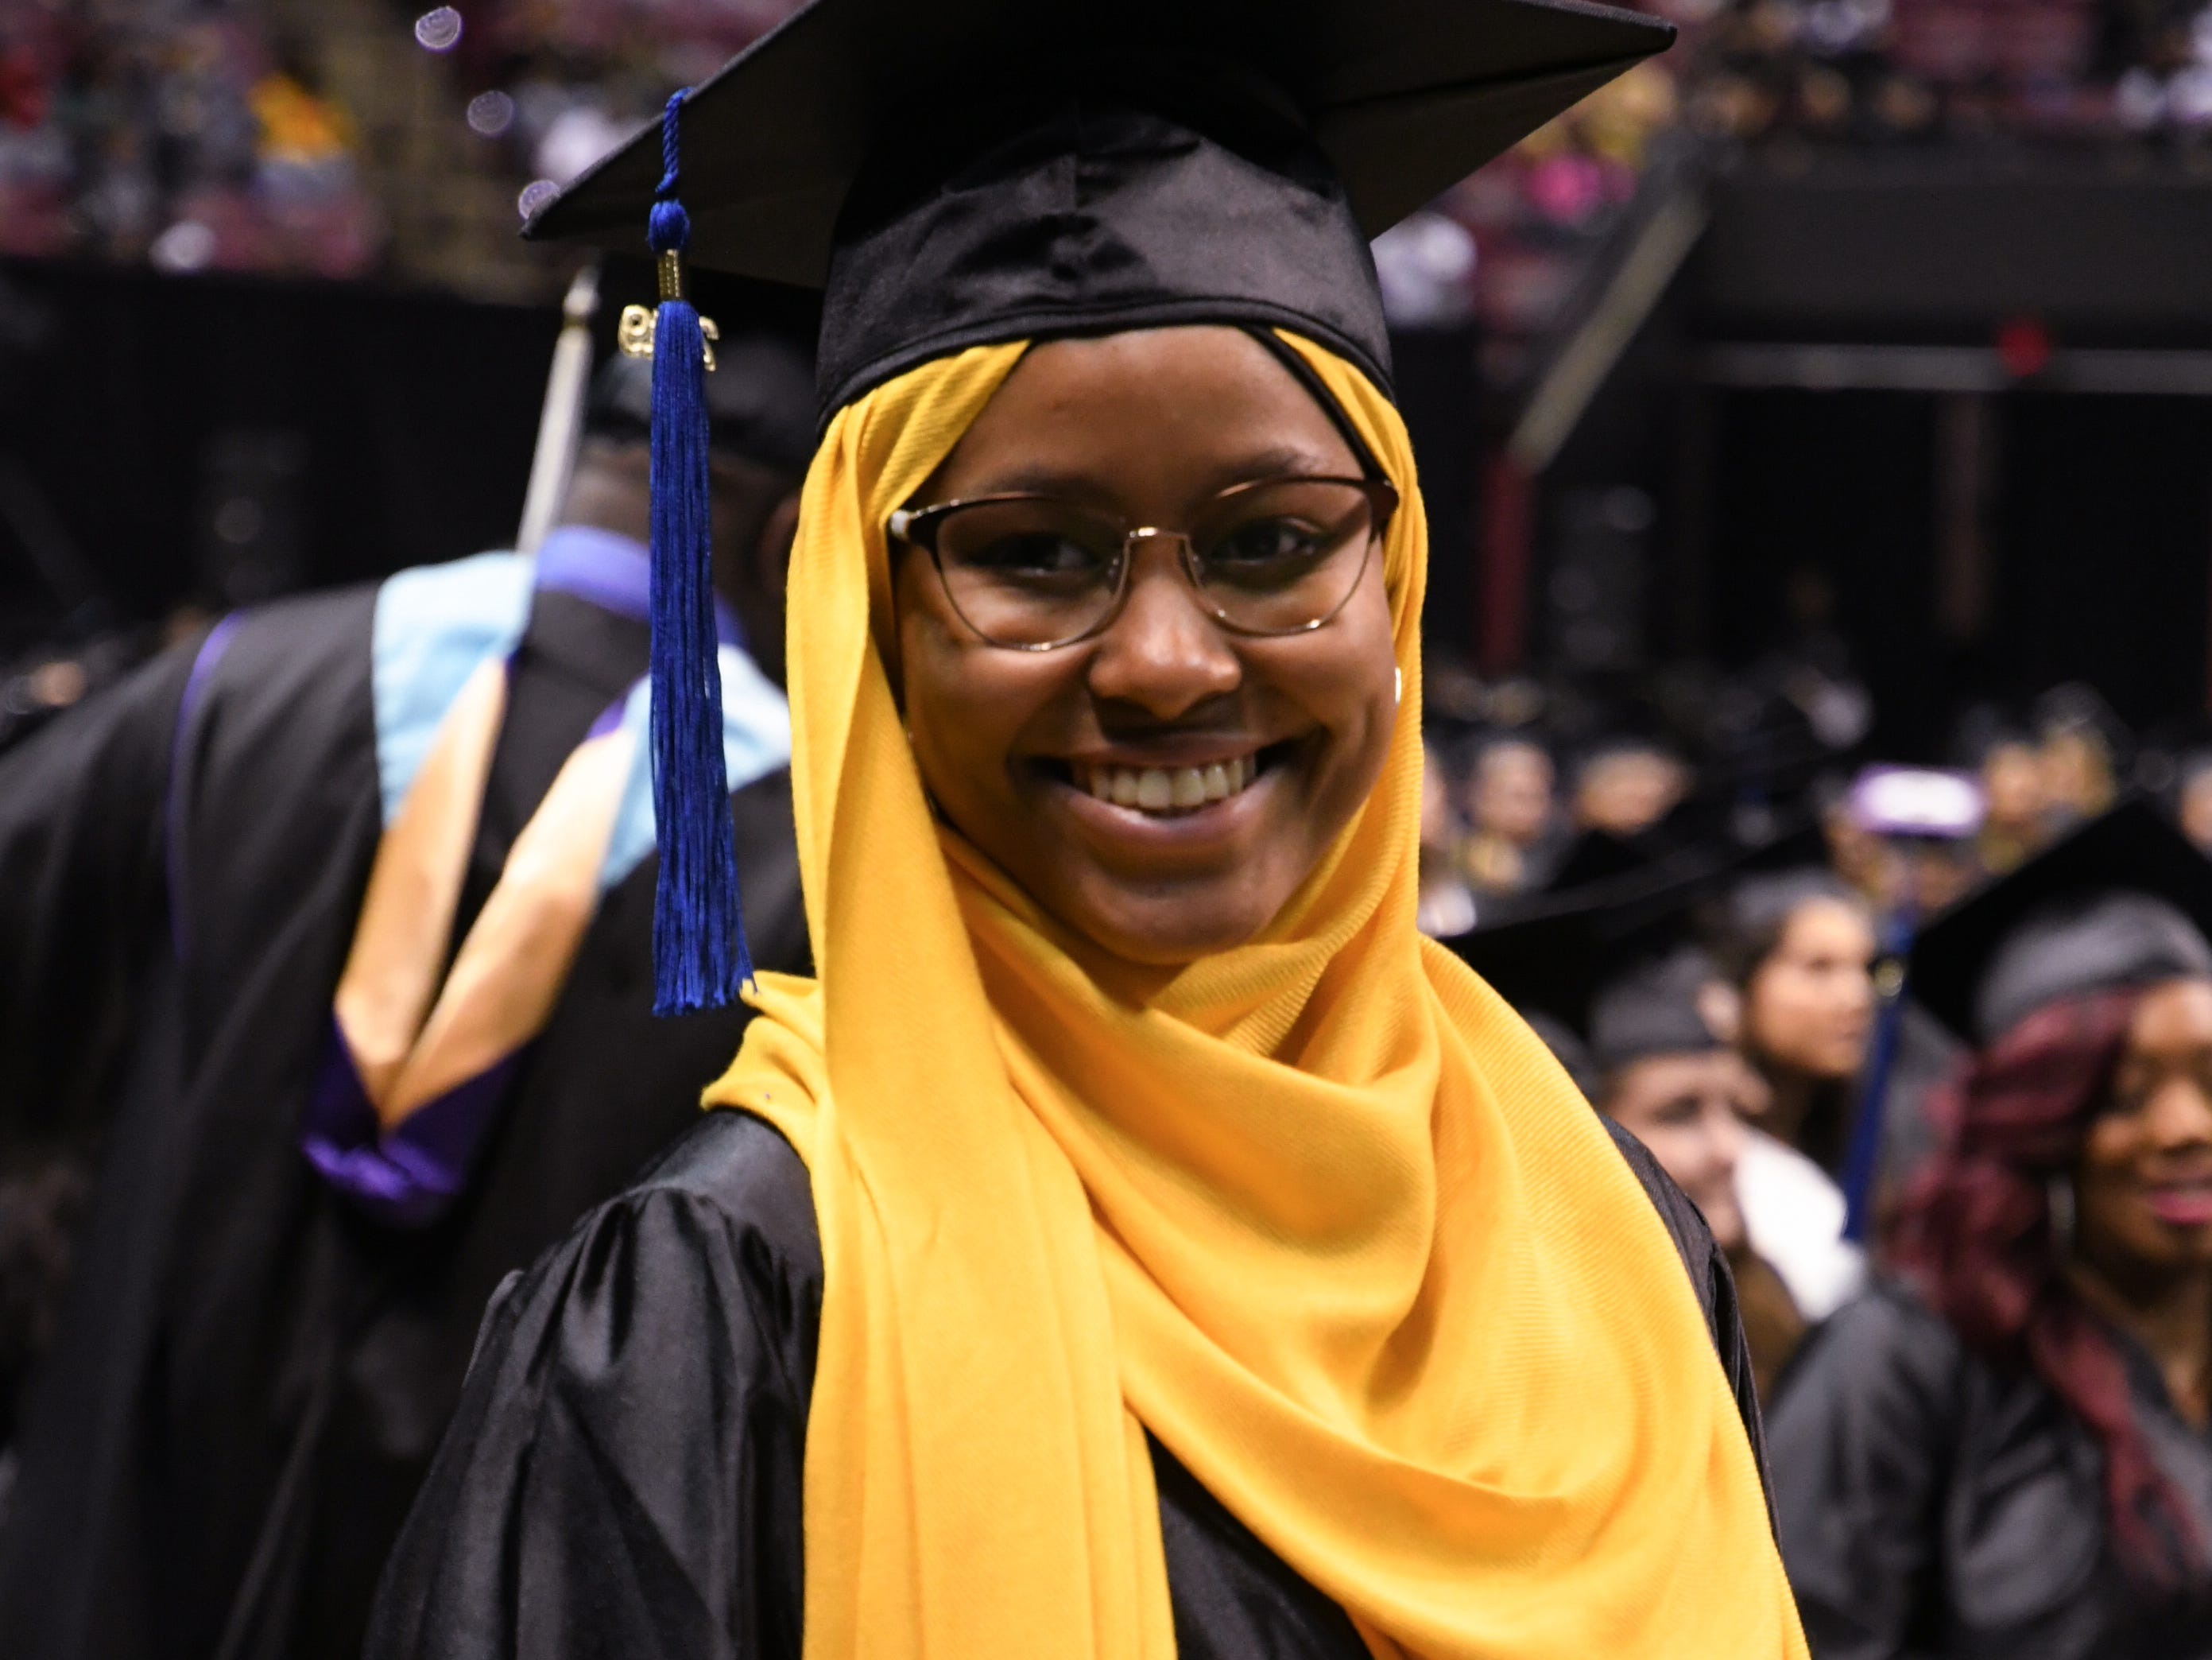 Qaaree Abdul-Bari graduates from Tallahassee Community College at the spring commencement ceremony at Donald L. Tucker Civic Center Saturday, May 4, 2019.